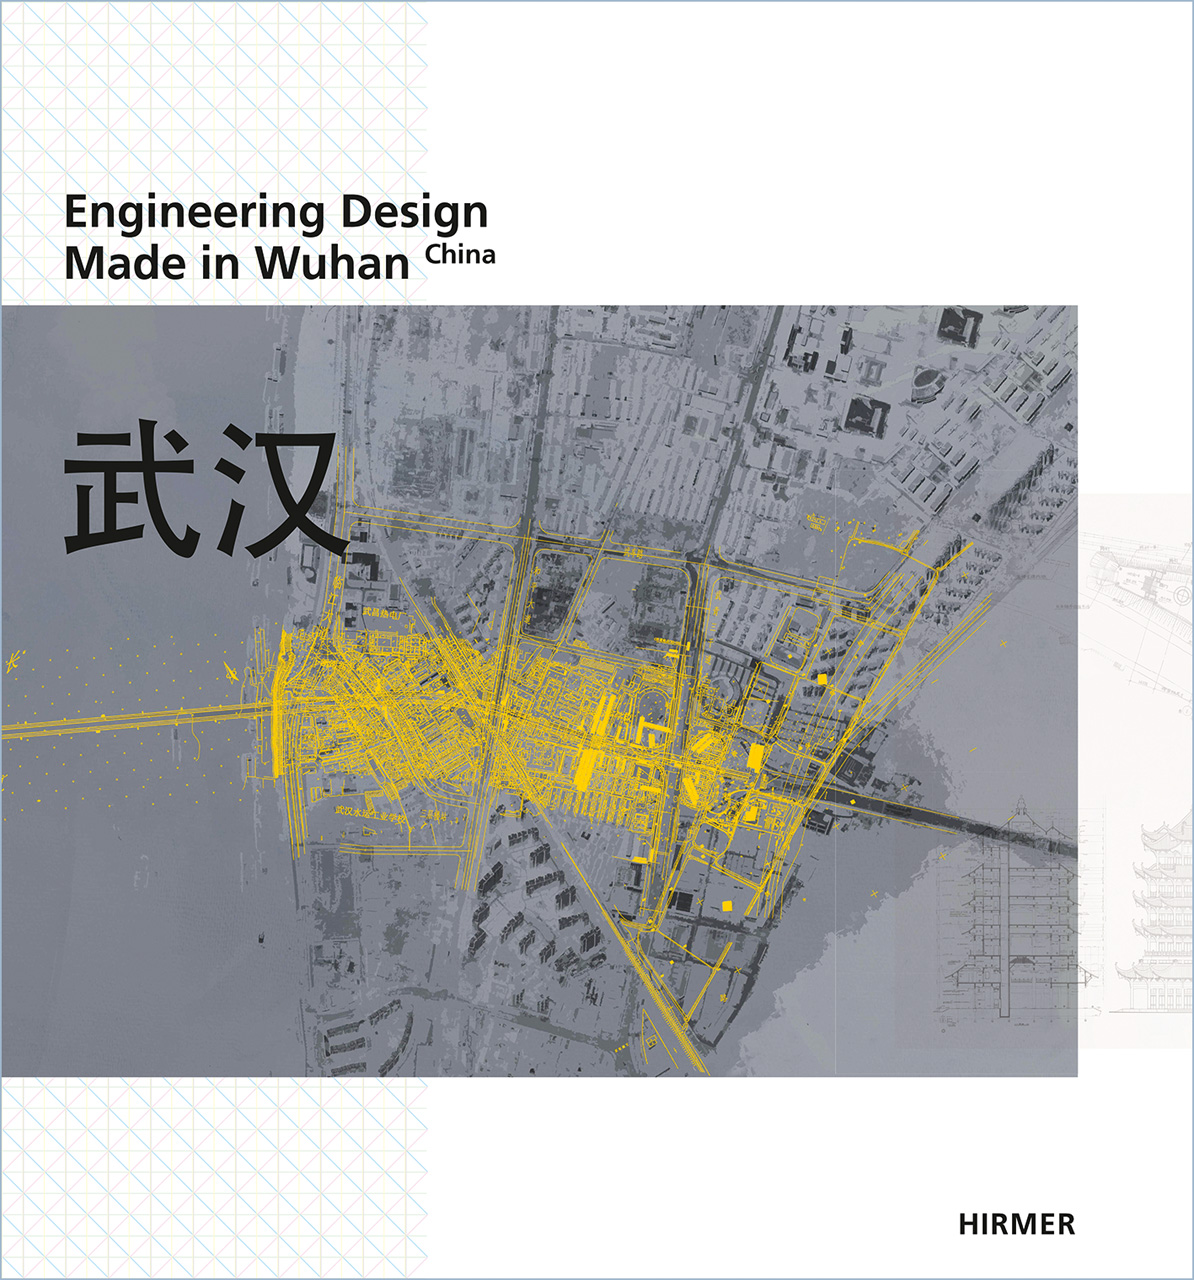 Engineering Design: Made in Wuhan, China